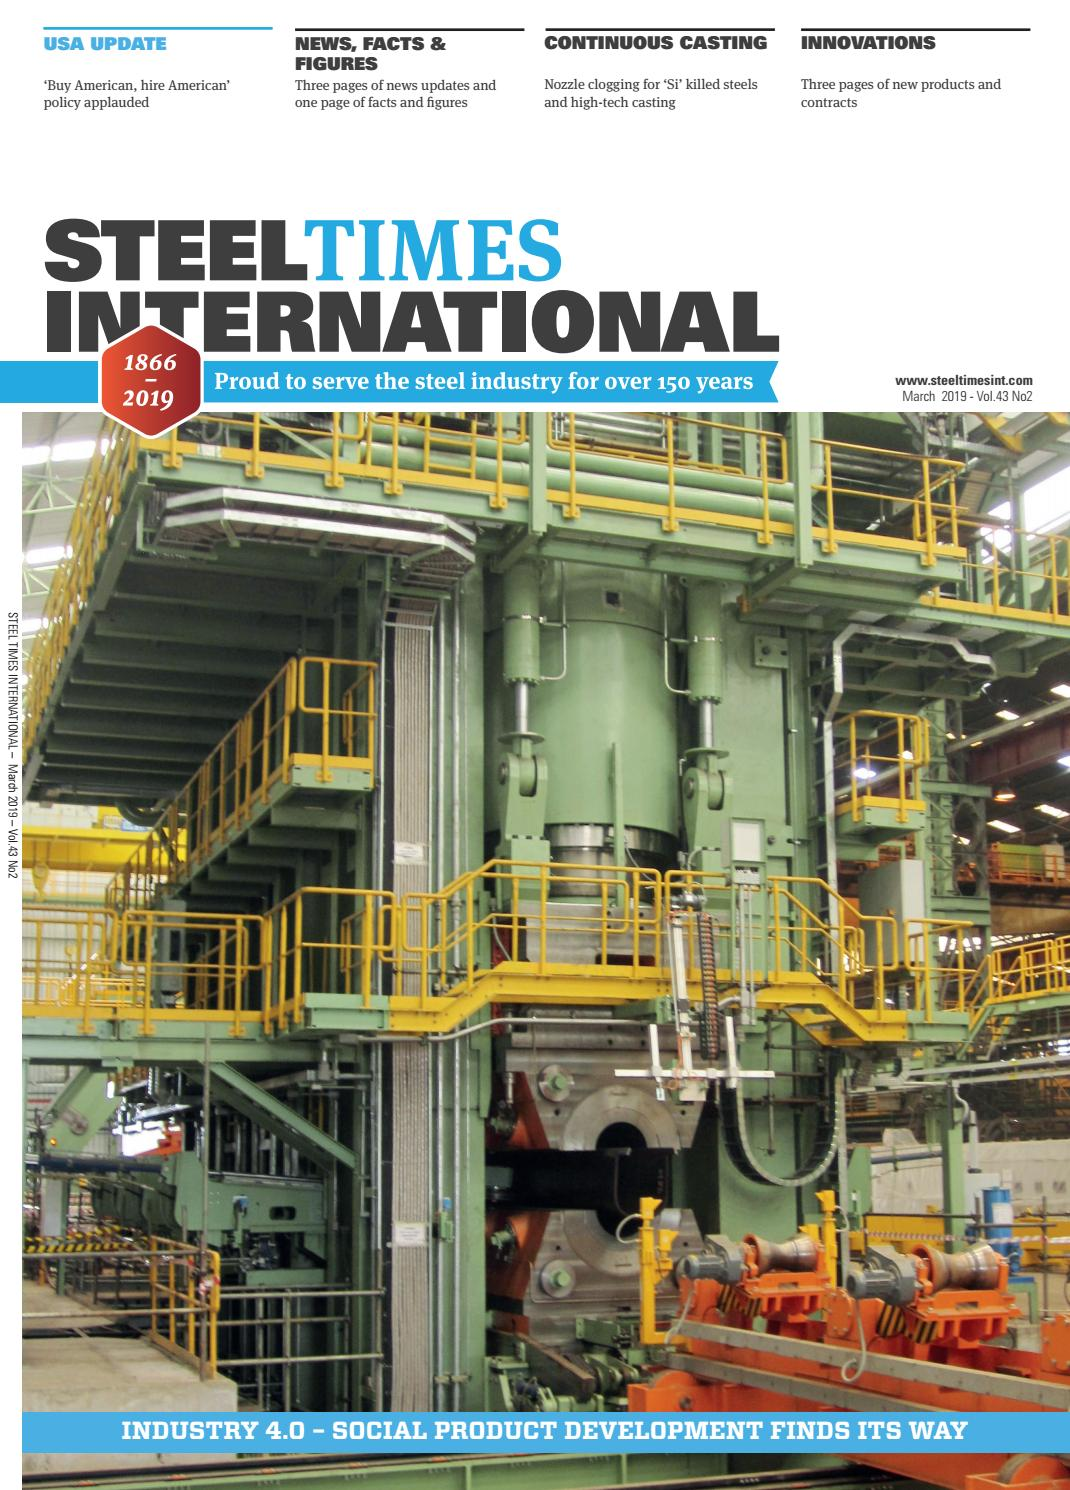 Steel Times International March 2019 by Quartz Business